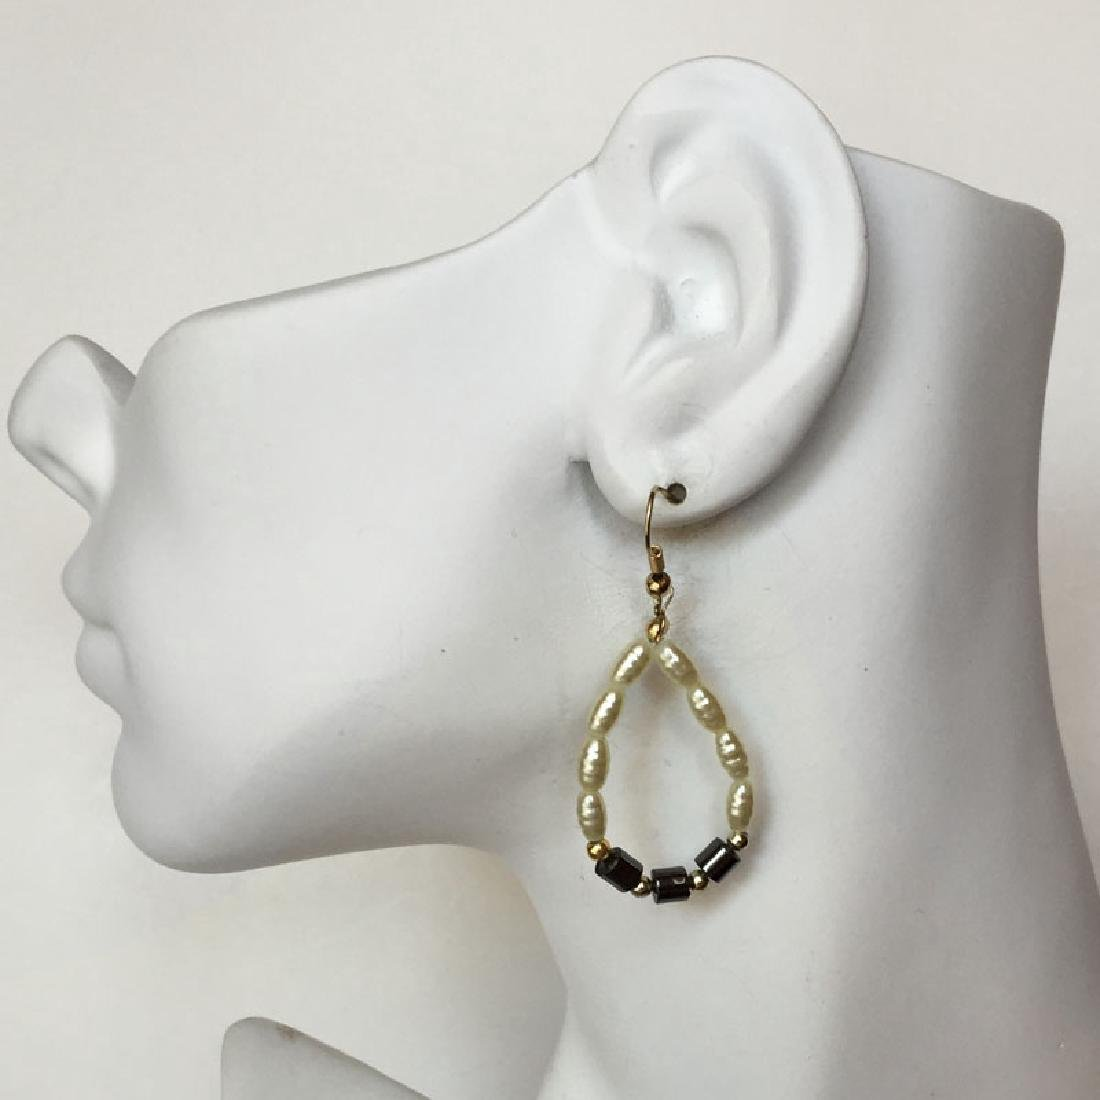 Gold plated fish hook earrings with hematite beads and - 2